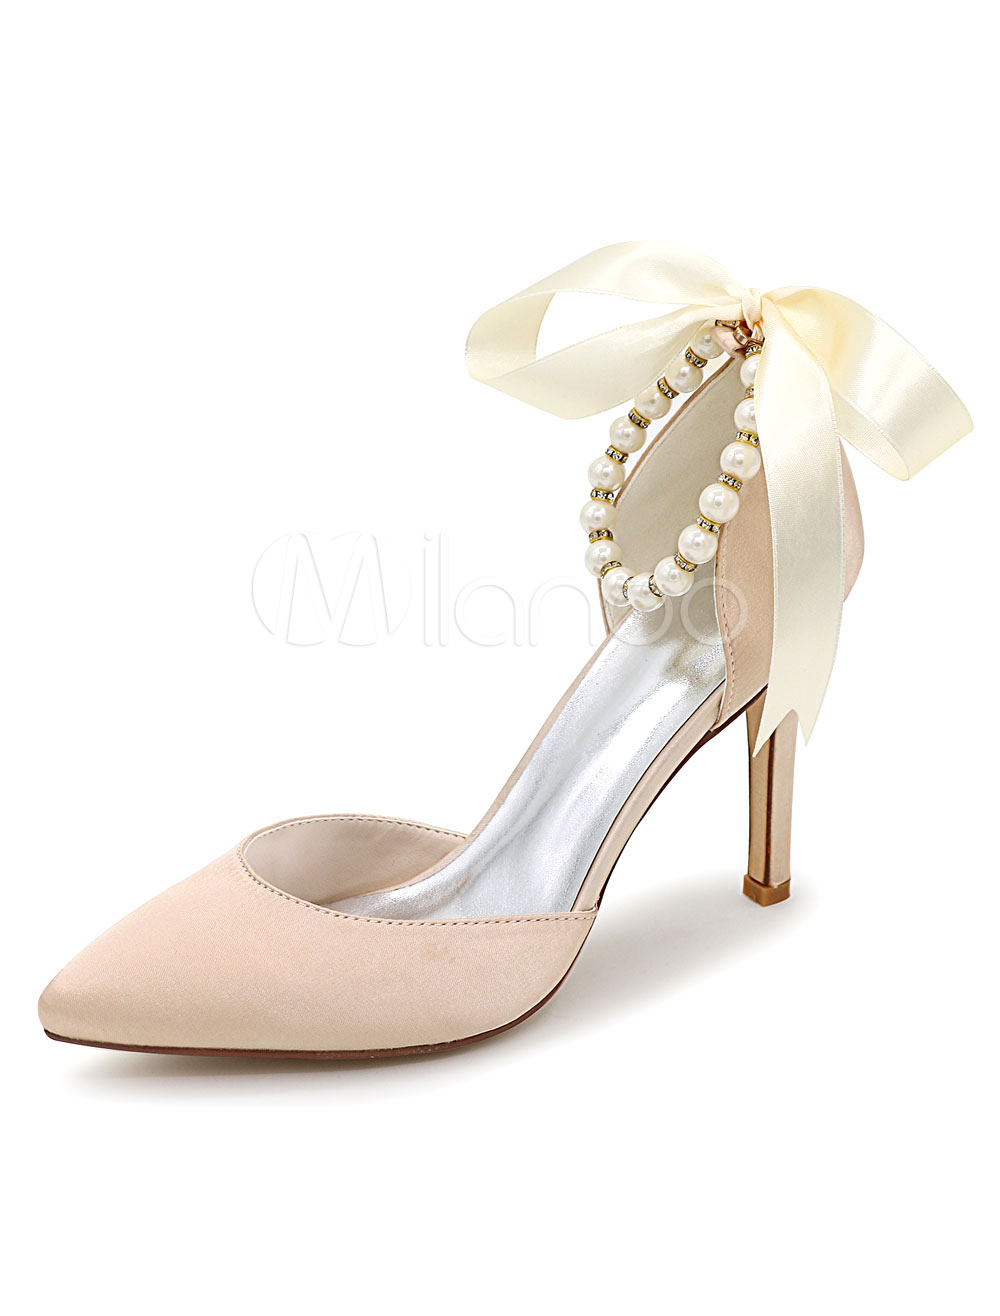 224bf1fd5c15 Wedding Shoes   Bridal Shoes- Shop the Latest Styles